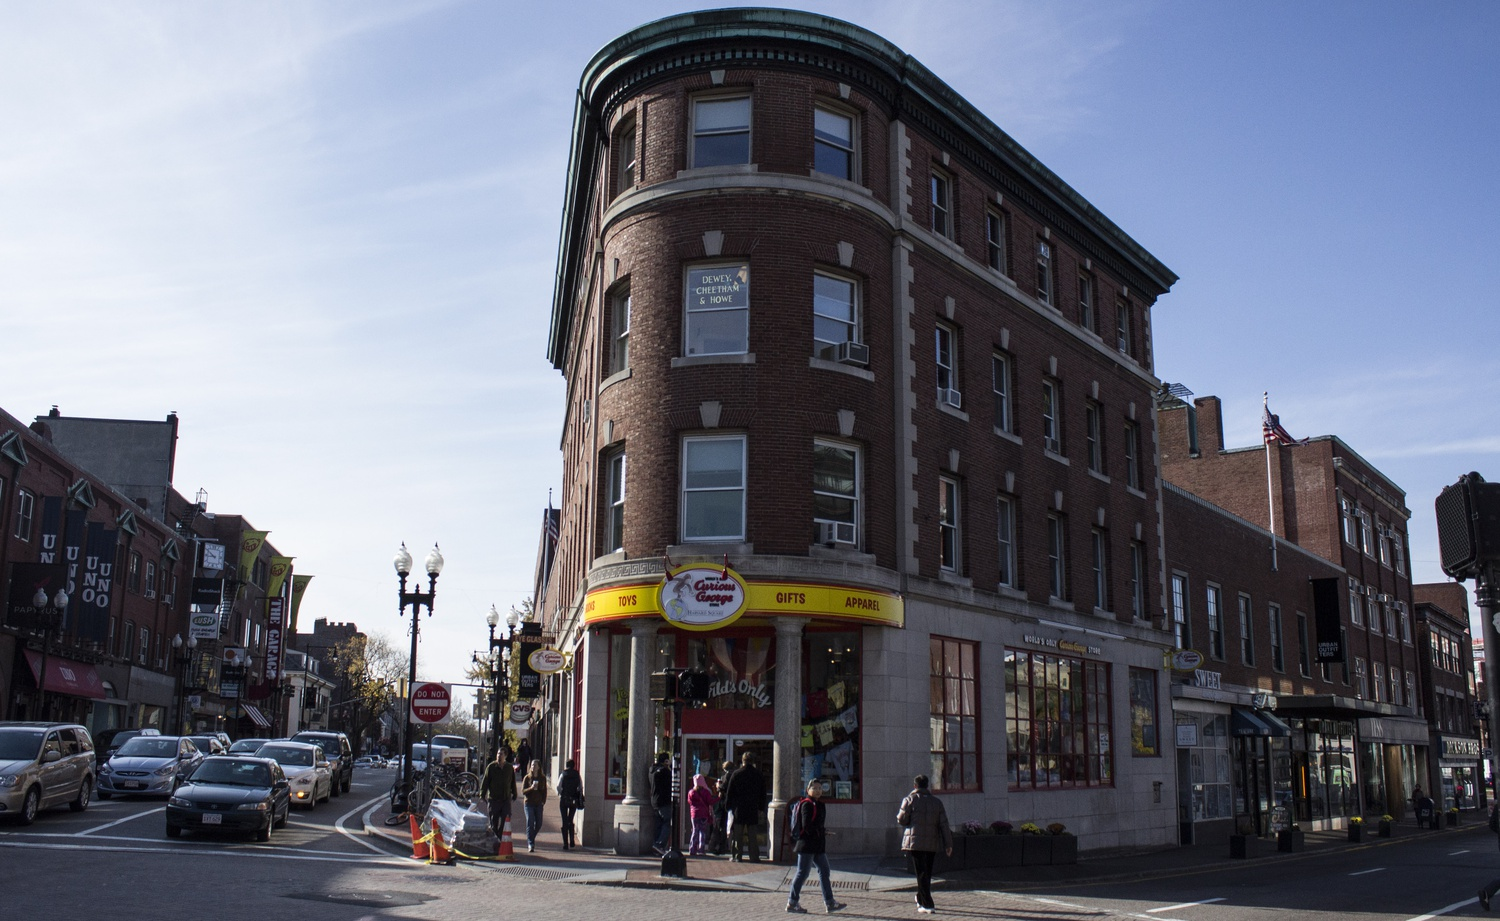 The fictional firm Dewey, Cheetham, & Howe is located above the Curious George store on the corner of JFK and Brattle Streets.